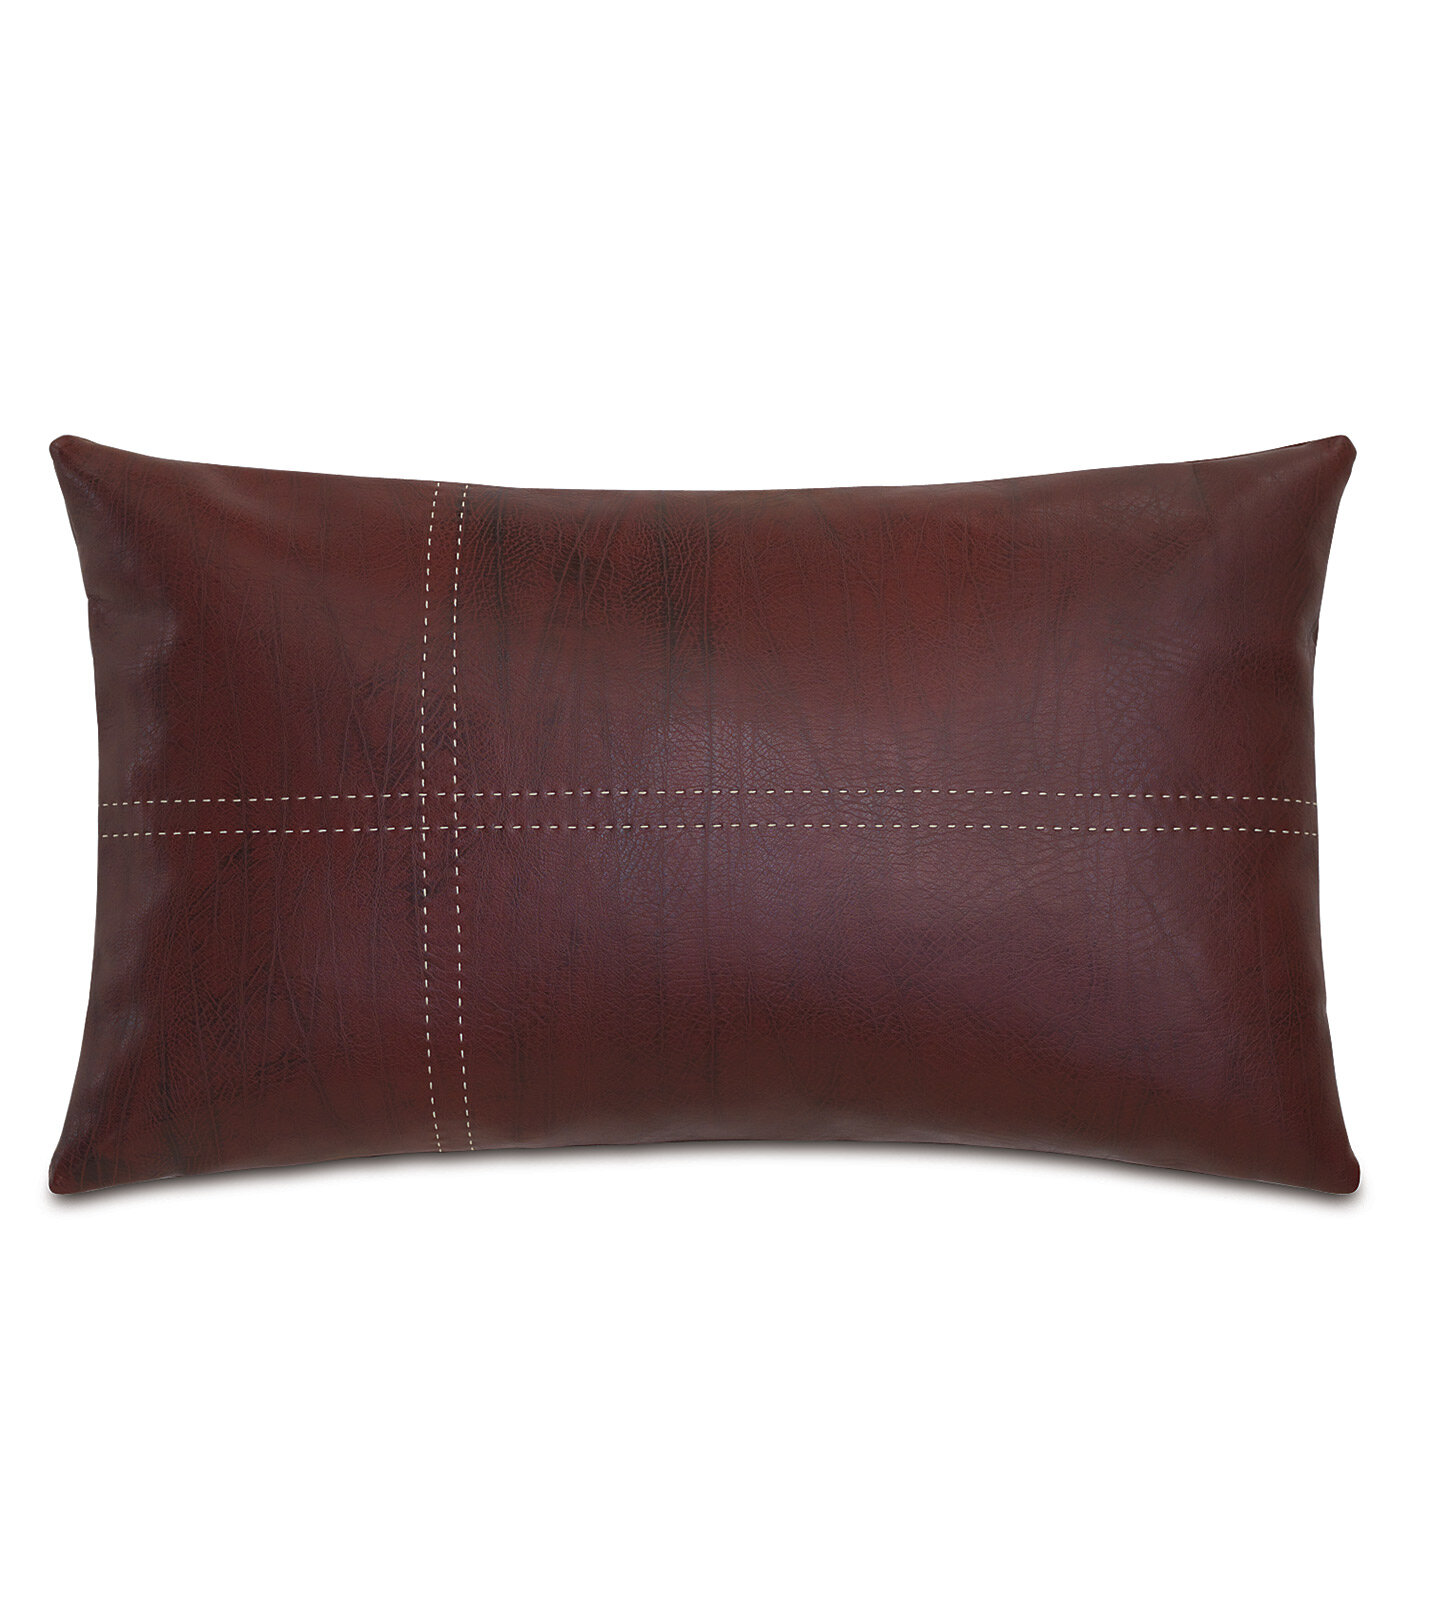 Eastern Accents Chalet Faux Leather Down Lumbar Pillow Reviews Wayfair